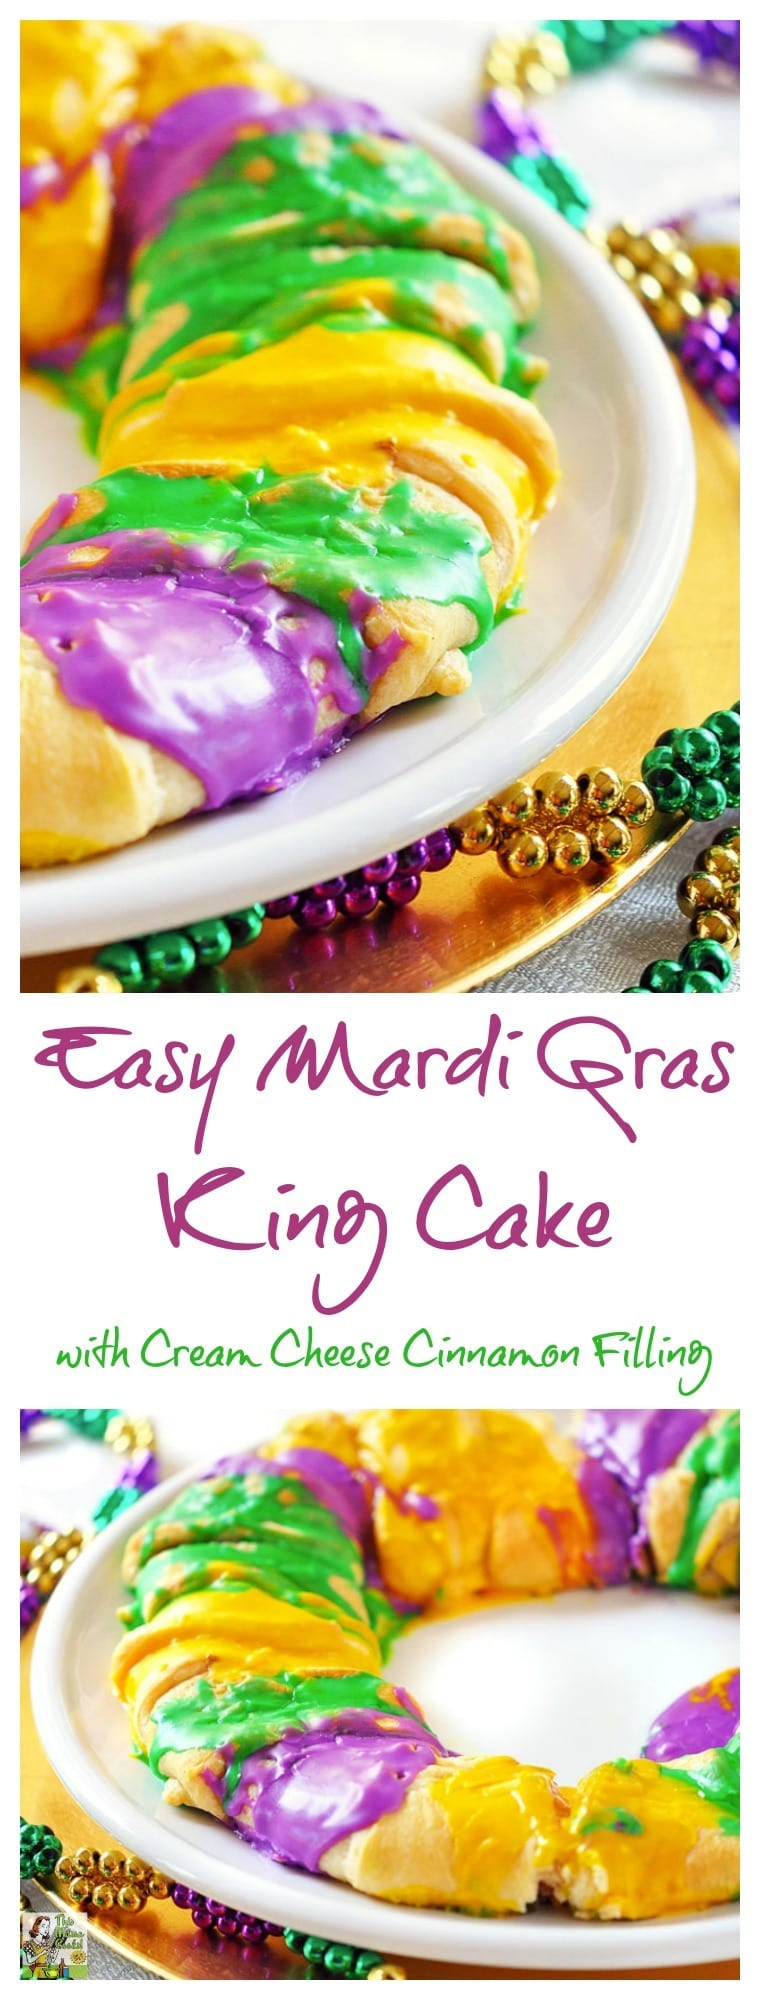 Need a King Cake recipe for your Mardi Gras party? Make this healthier and easy to make Mardi Gras King Cake recipe with Cream Cheese Cinnamon Filling!